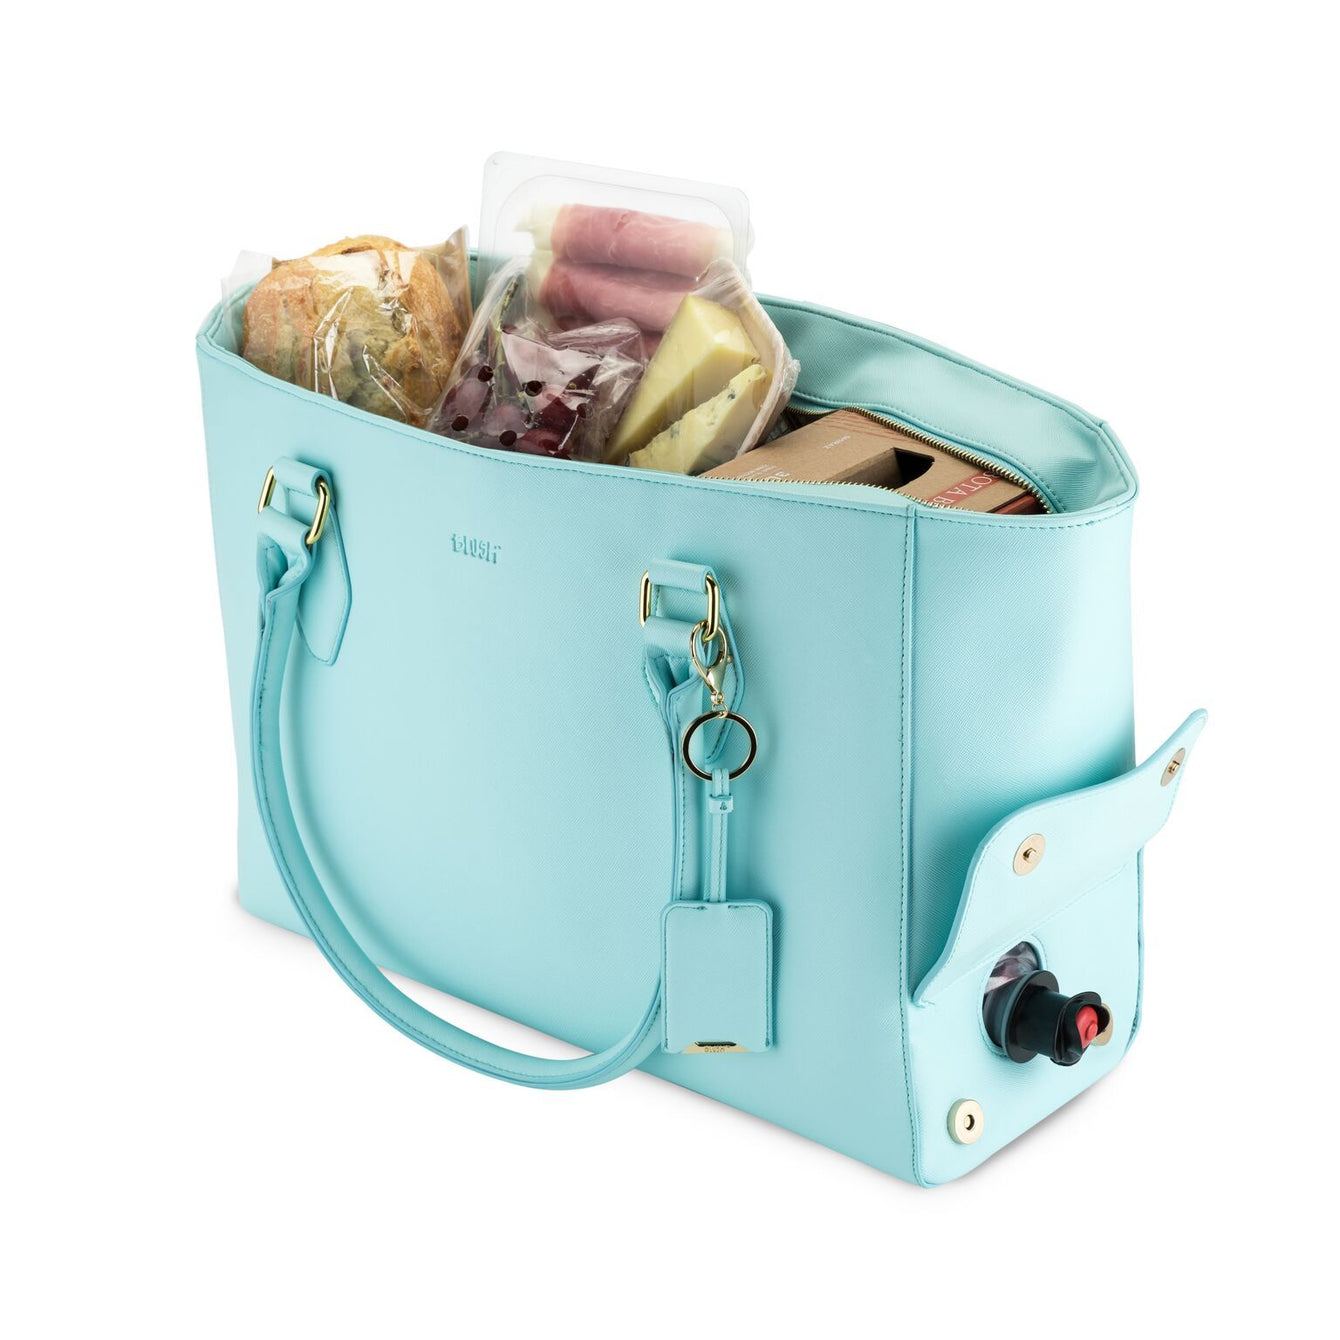 Insulated Cooler Wine Chiller Tote Aqua-Home - Travel + Outdoors - Insulated Beverage Carriers-BLUSH-Peccadilly